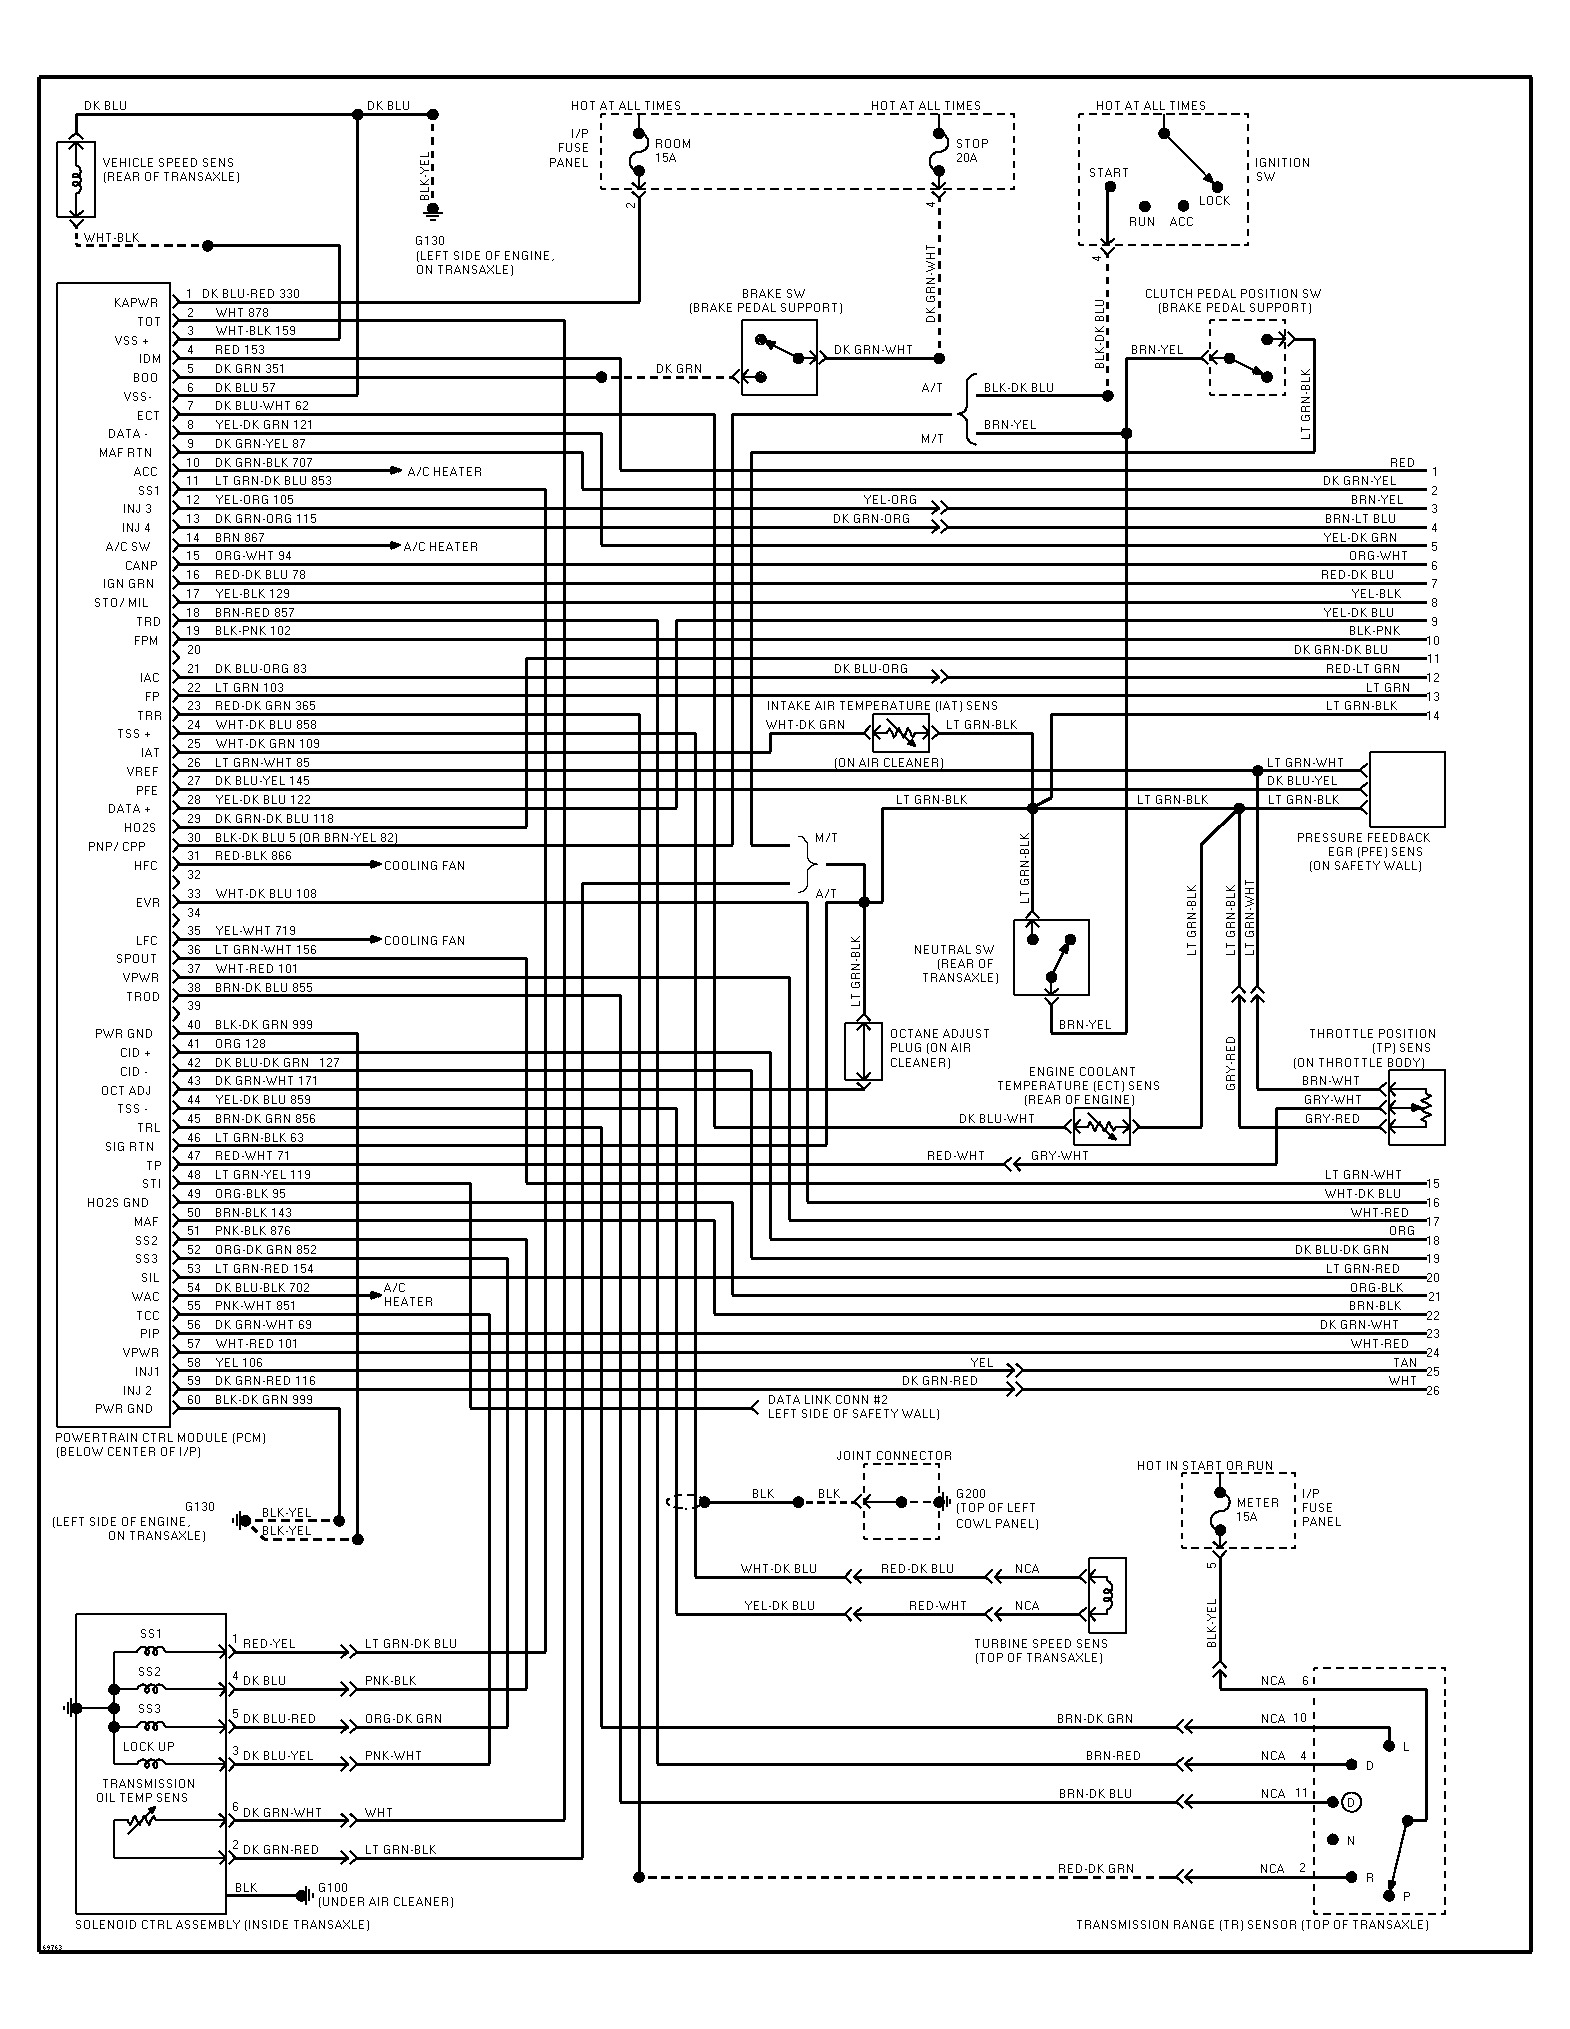 original 1995 ford escort wiring diagram i need to find a color coded 1998 ford escort wiring diagram at webbmarketing.co